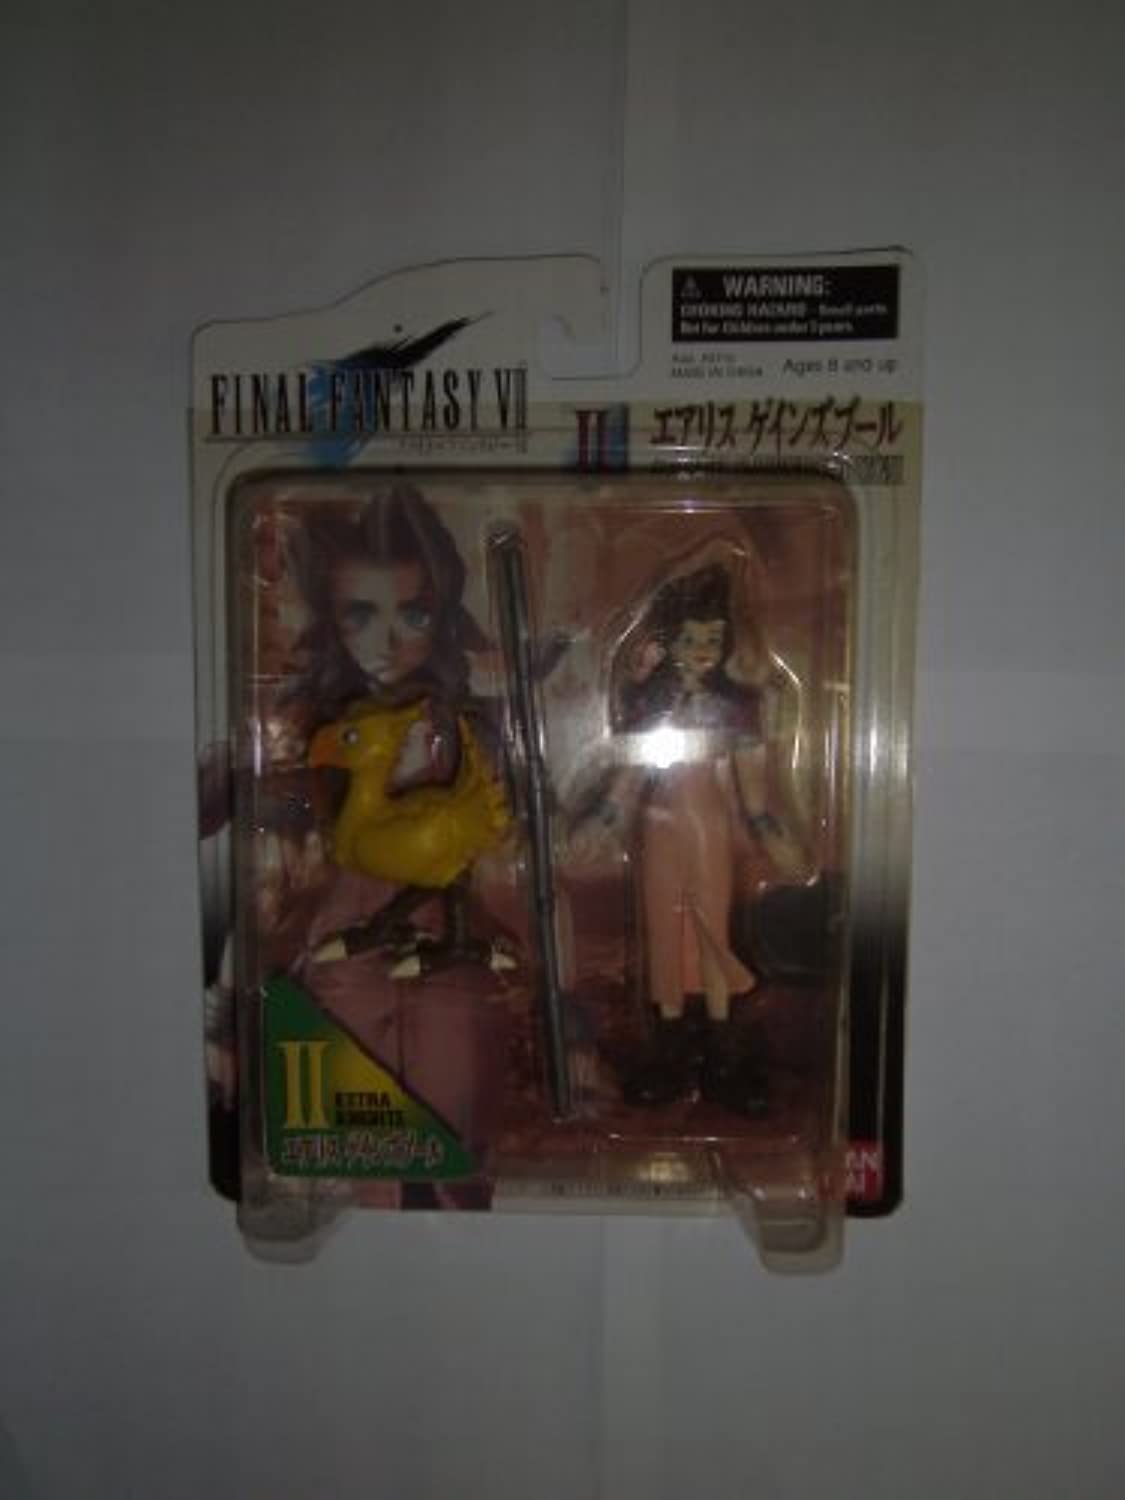 Barett Wallace  Extra Knights  3 of the set by Final Fantasy